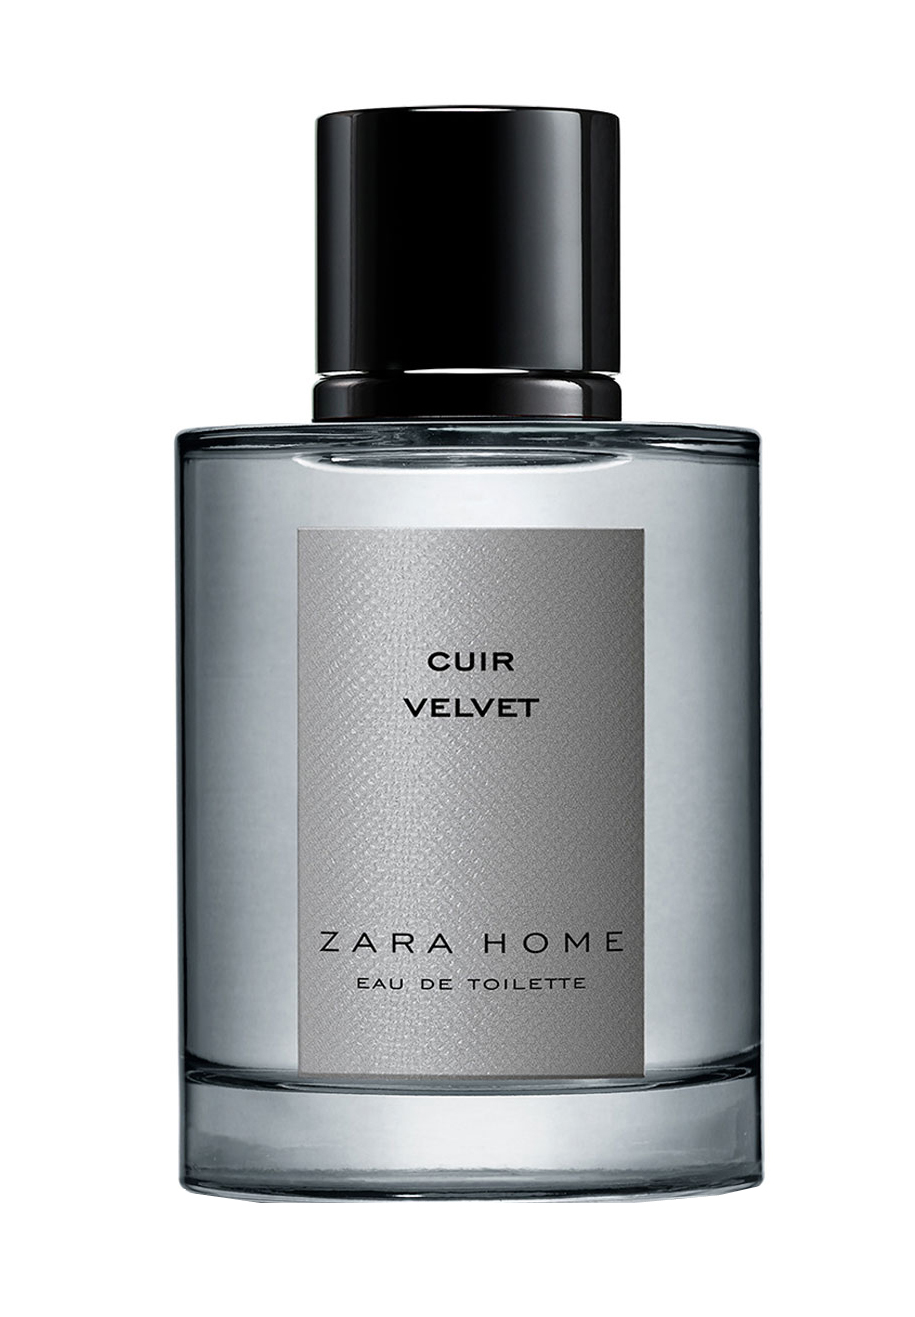 cuir velvet zara home perfume a new fragrance for women and men 2016. Black Bedroom Furniture Sets. Home Design Ideas